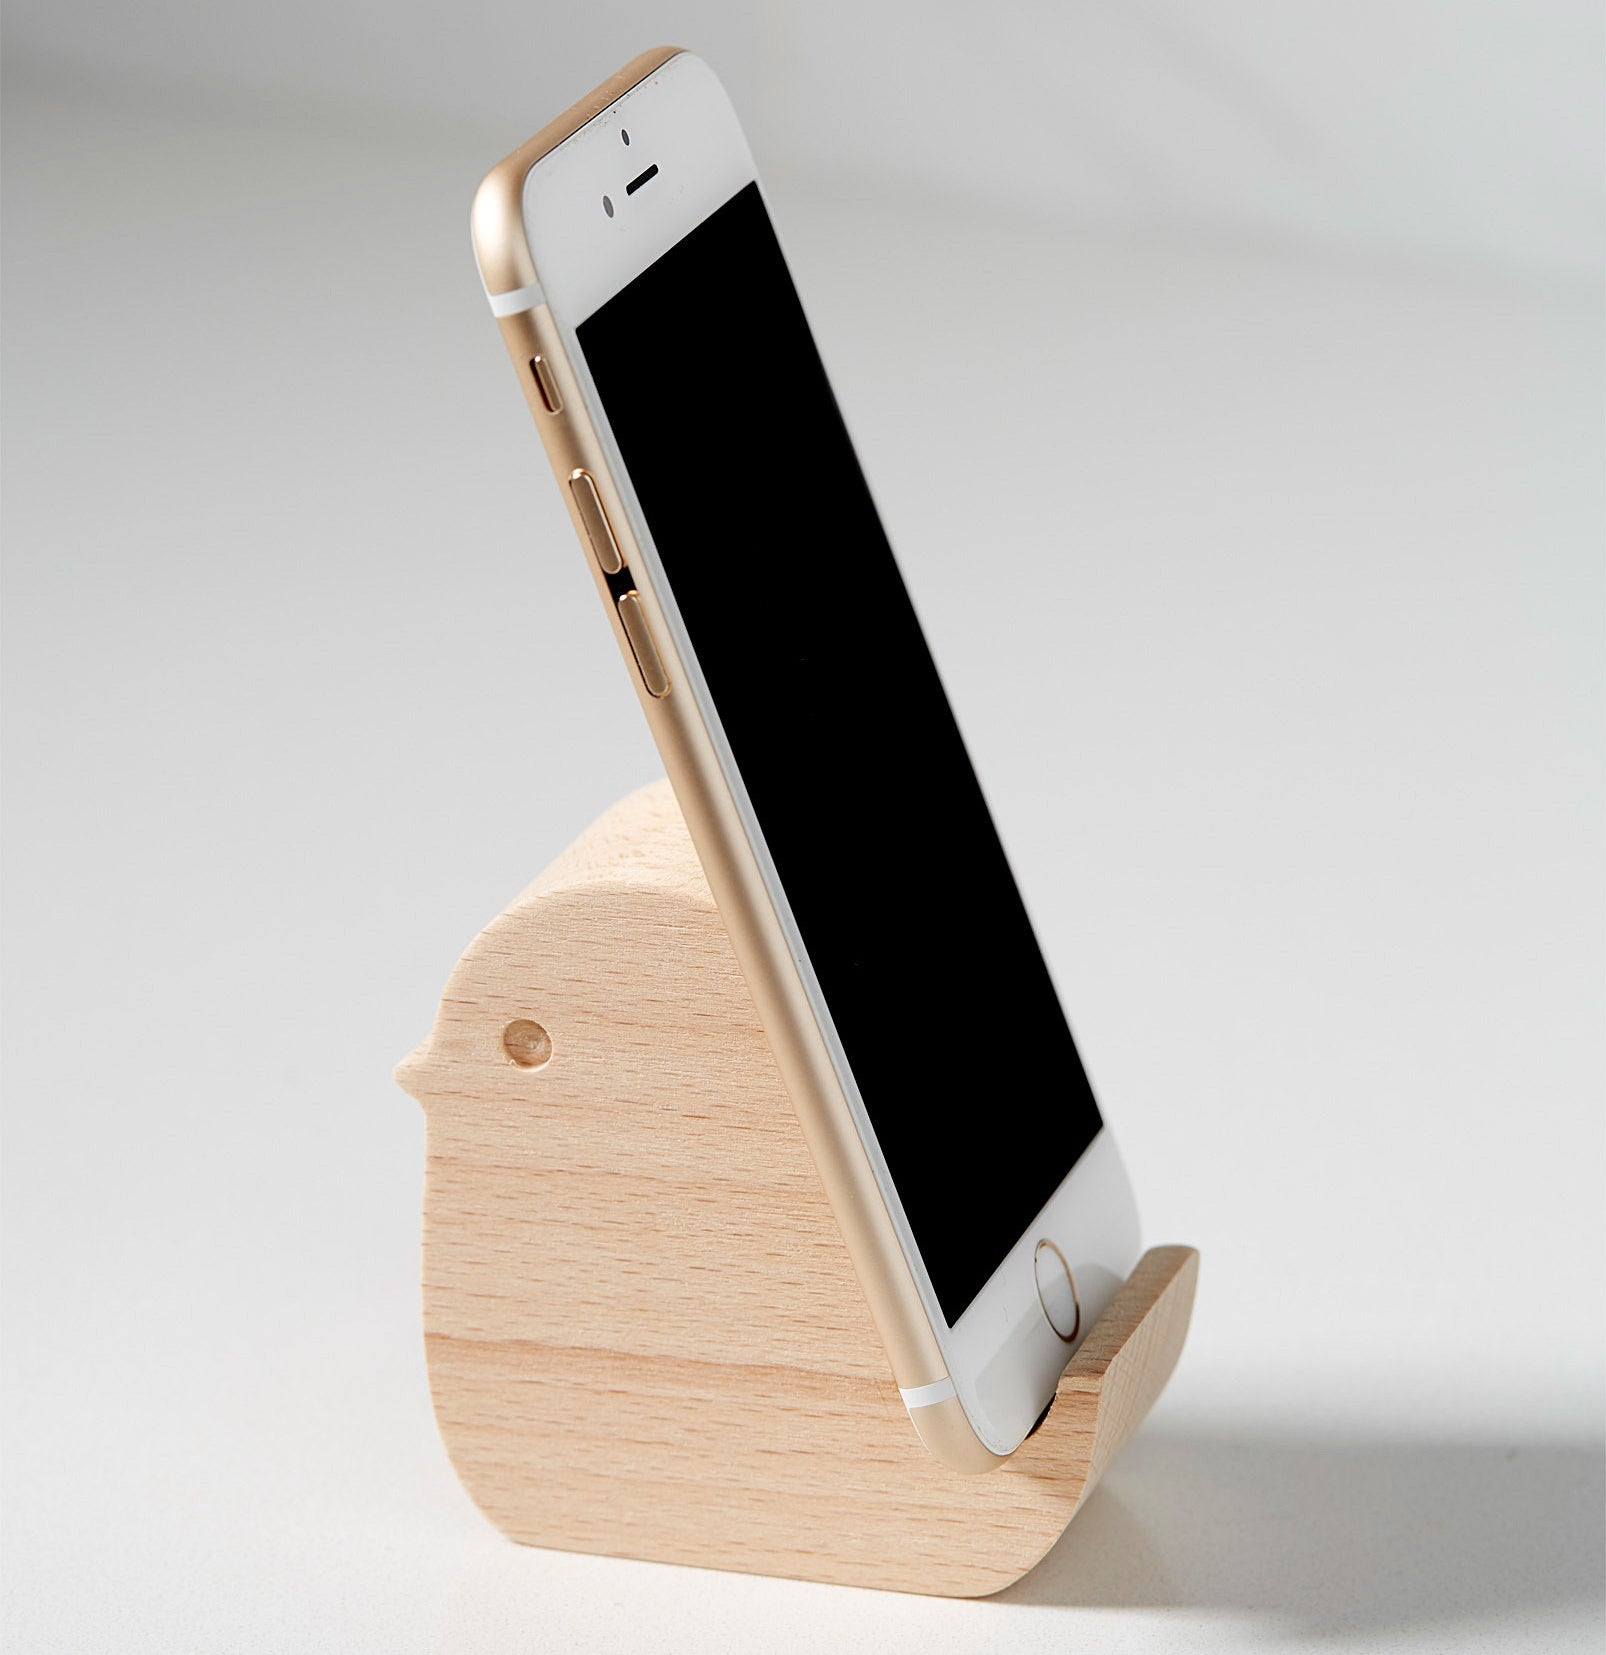 A wooden phone holder in the shape of a small bird